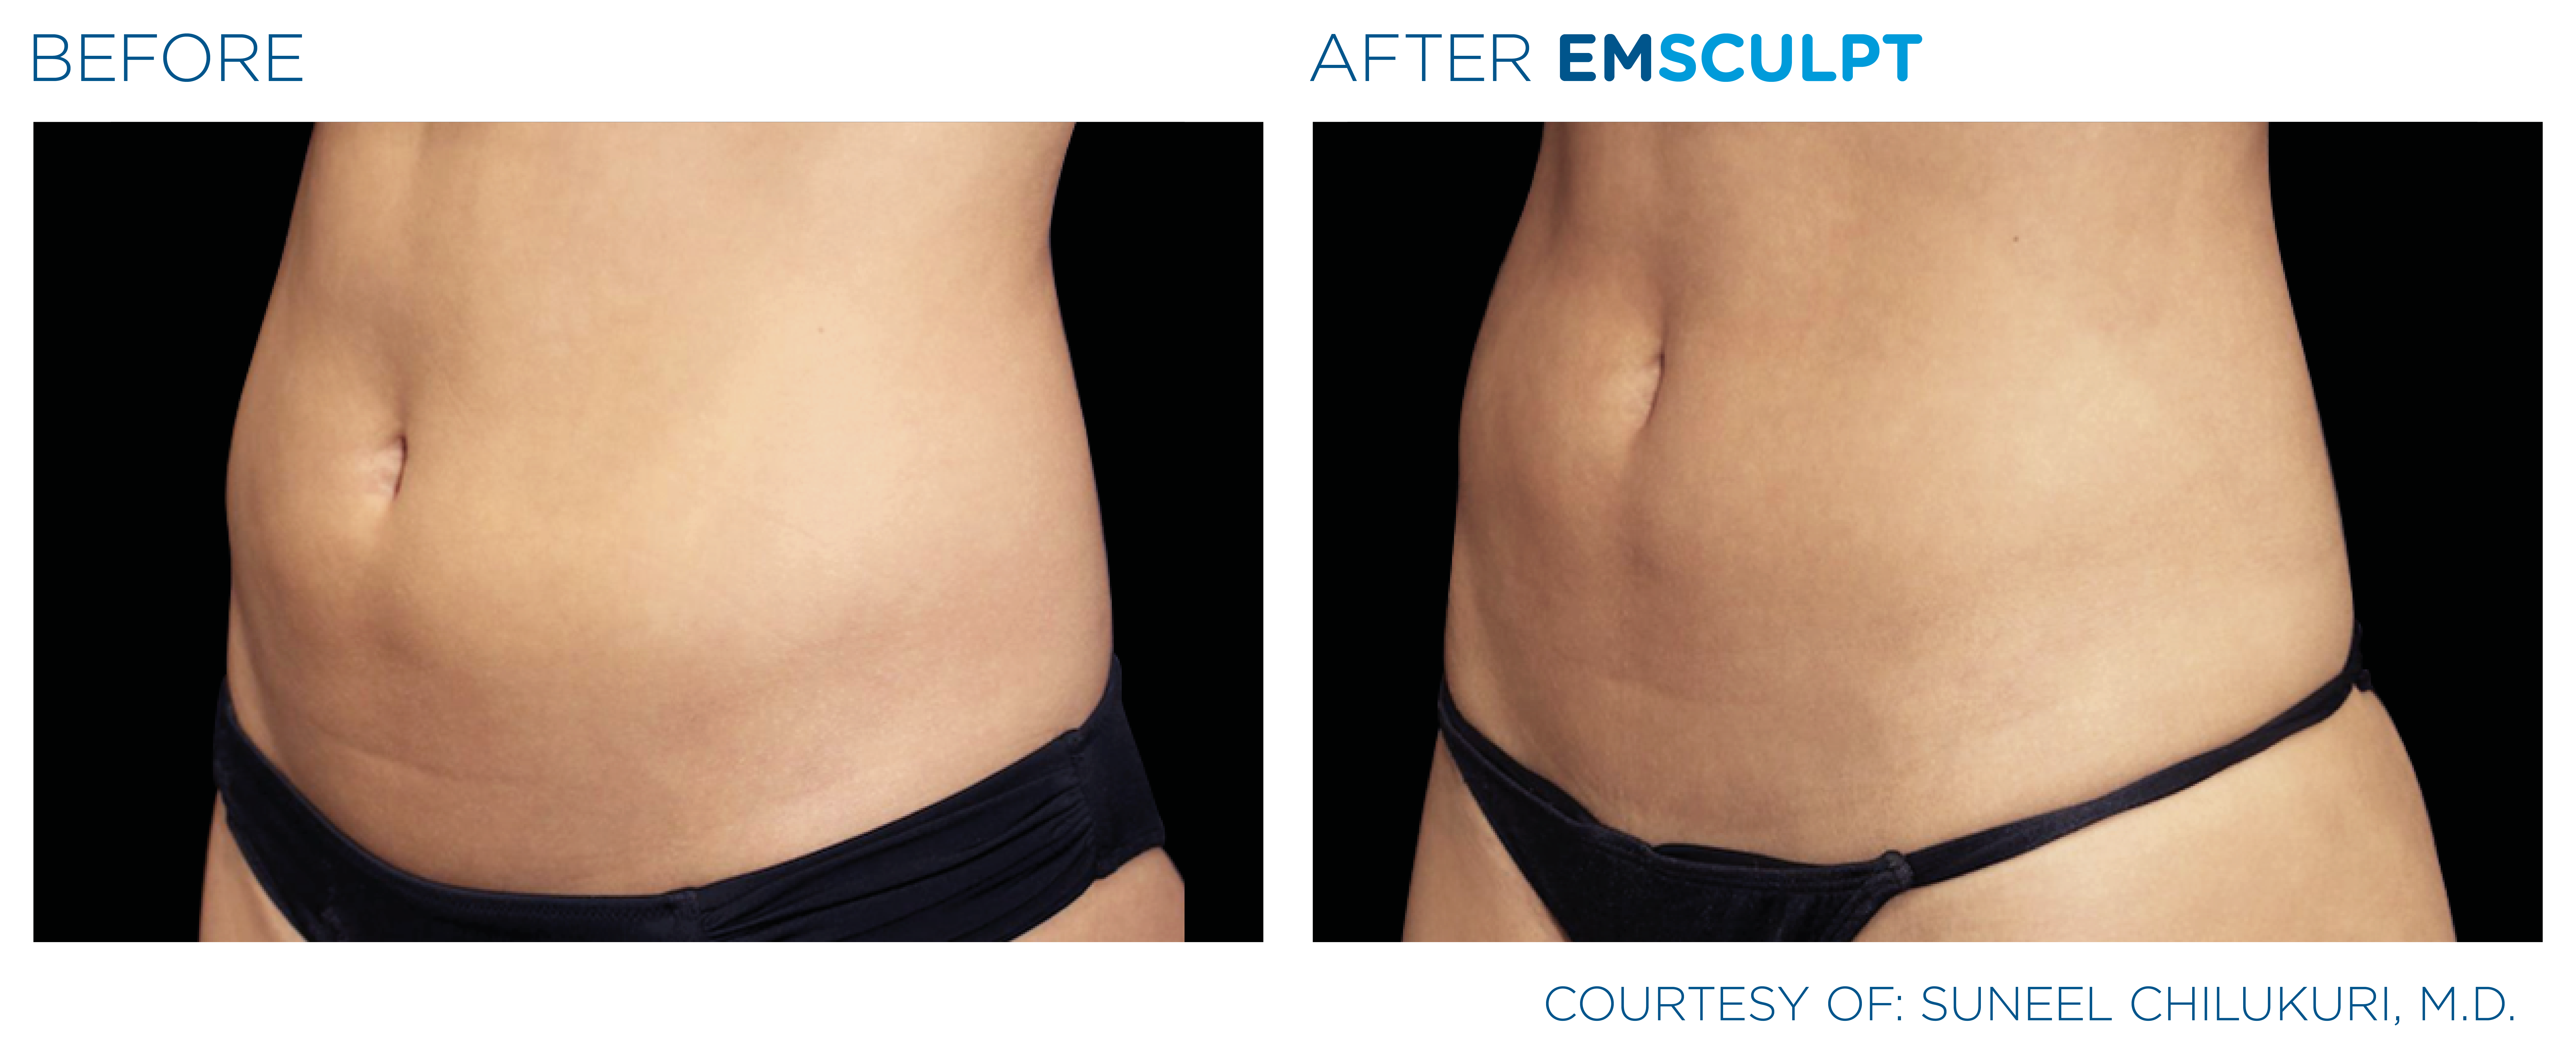 Before and After EMSculpt for the Stomach